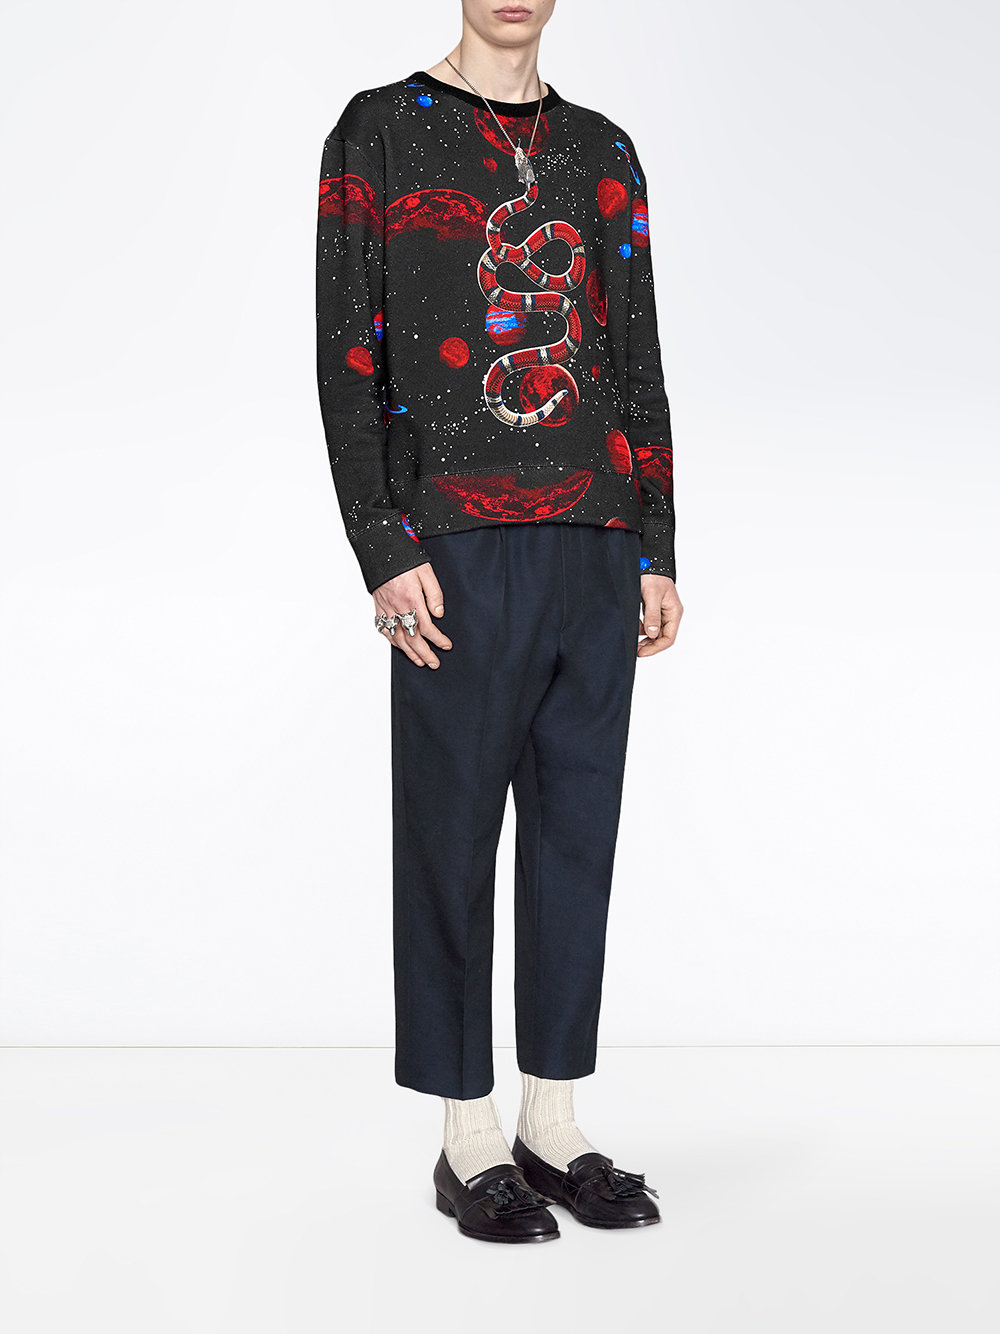 Gucci Space Snake Print Sweatshirt - Farfetch